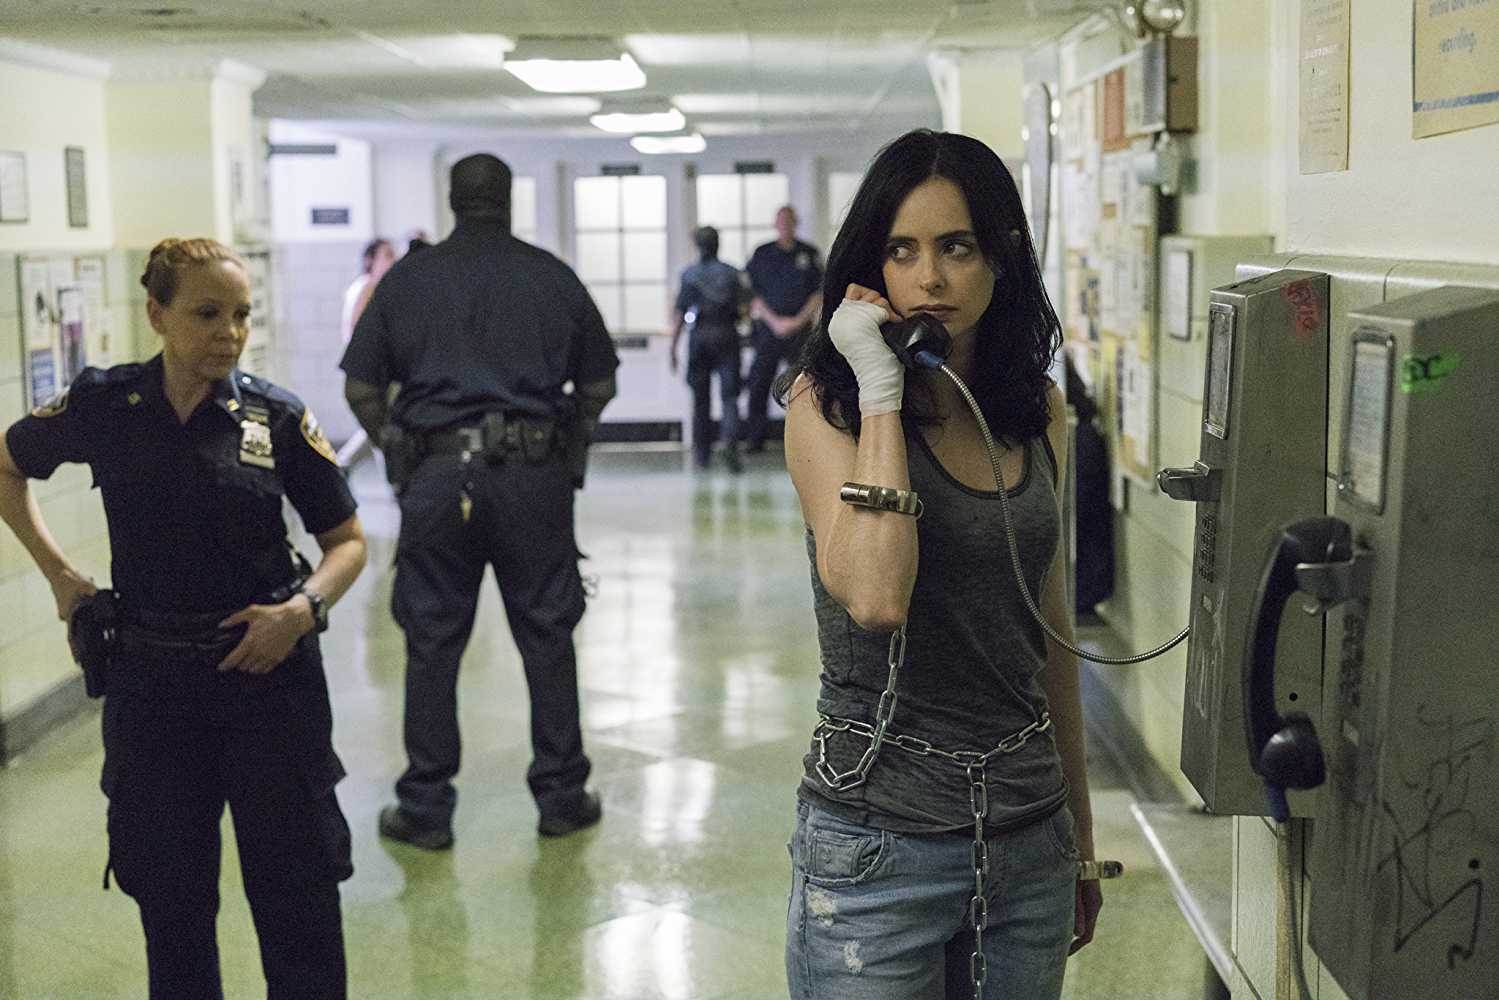 'Jessica Jones' was renewed for a third season last month (Source: IMDb)